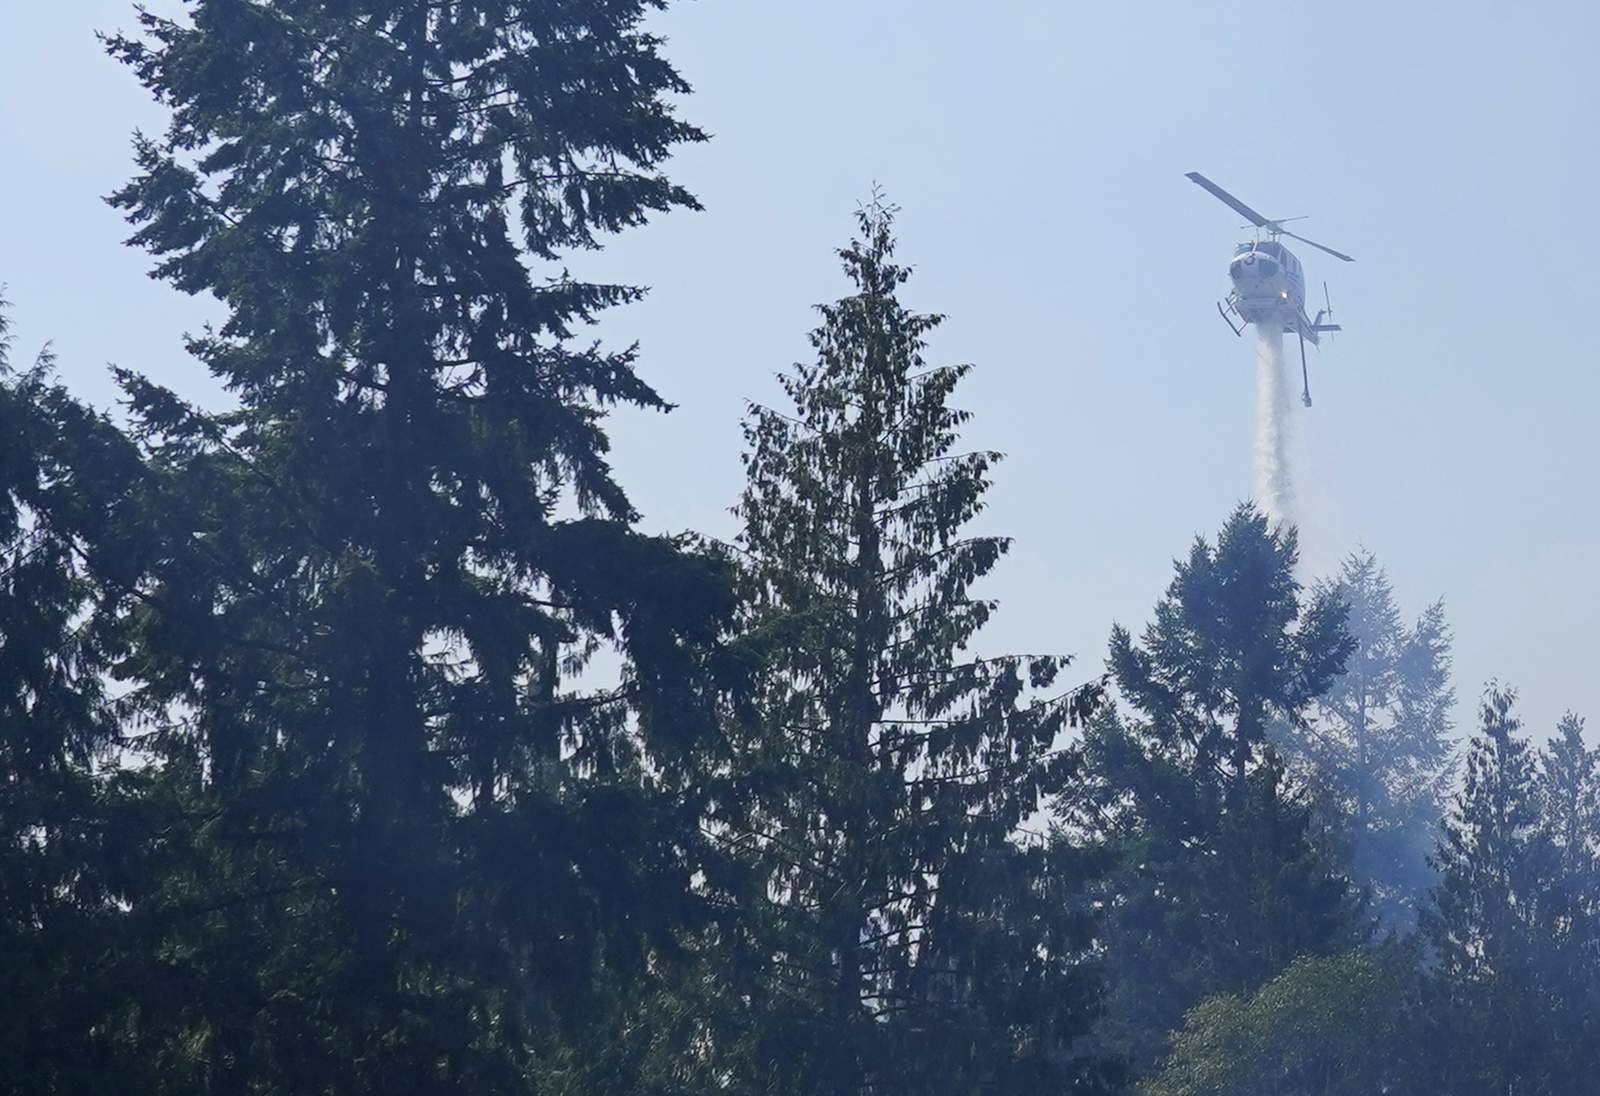 Fires without precedent rage in usually cool, wet Northwest